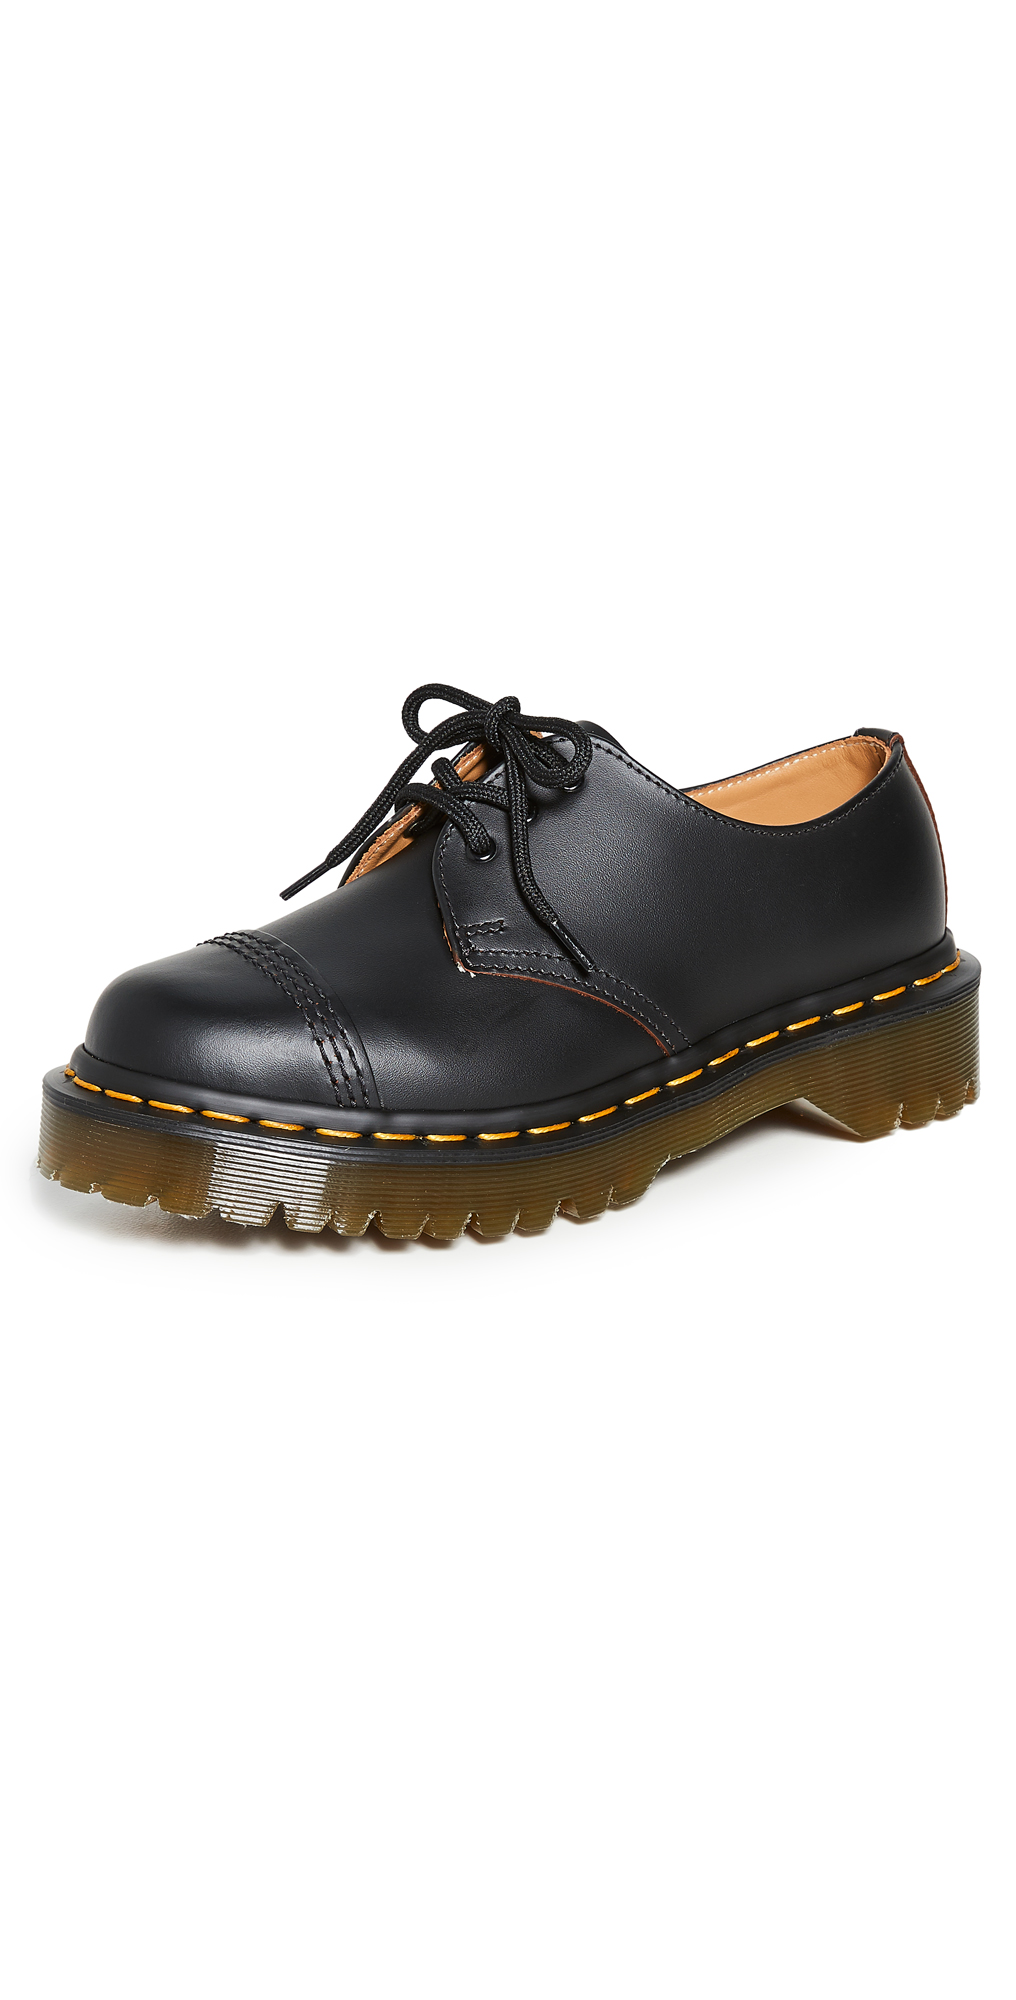 Dr. Martens 1461 Bex 3 Eye Toe Cap Oxford Shoes